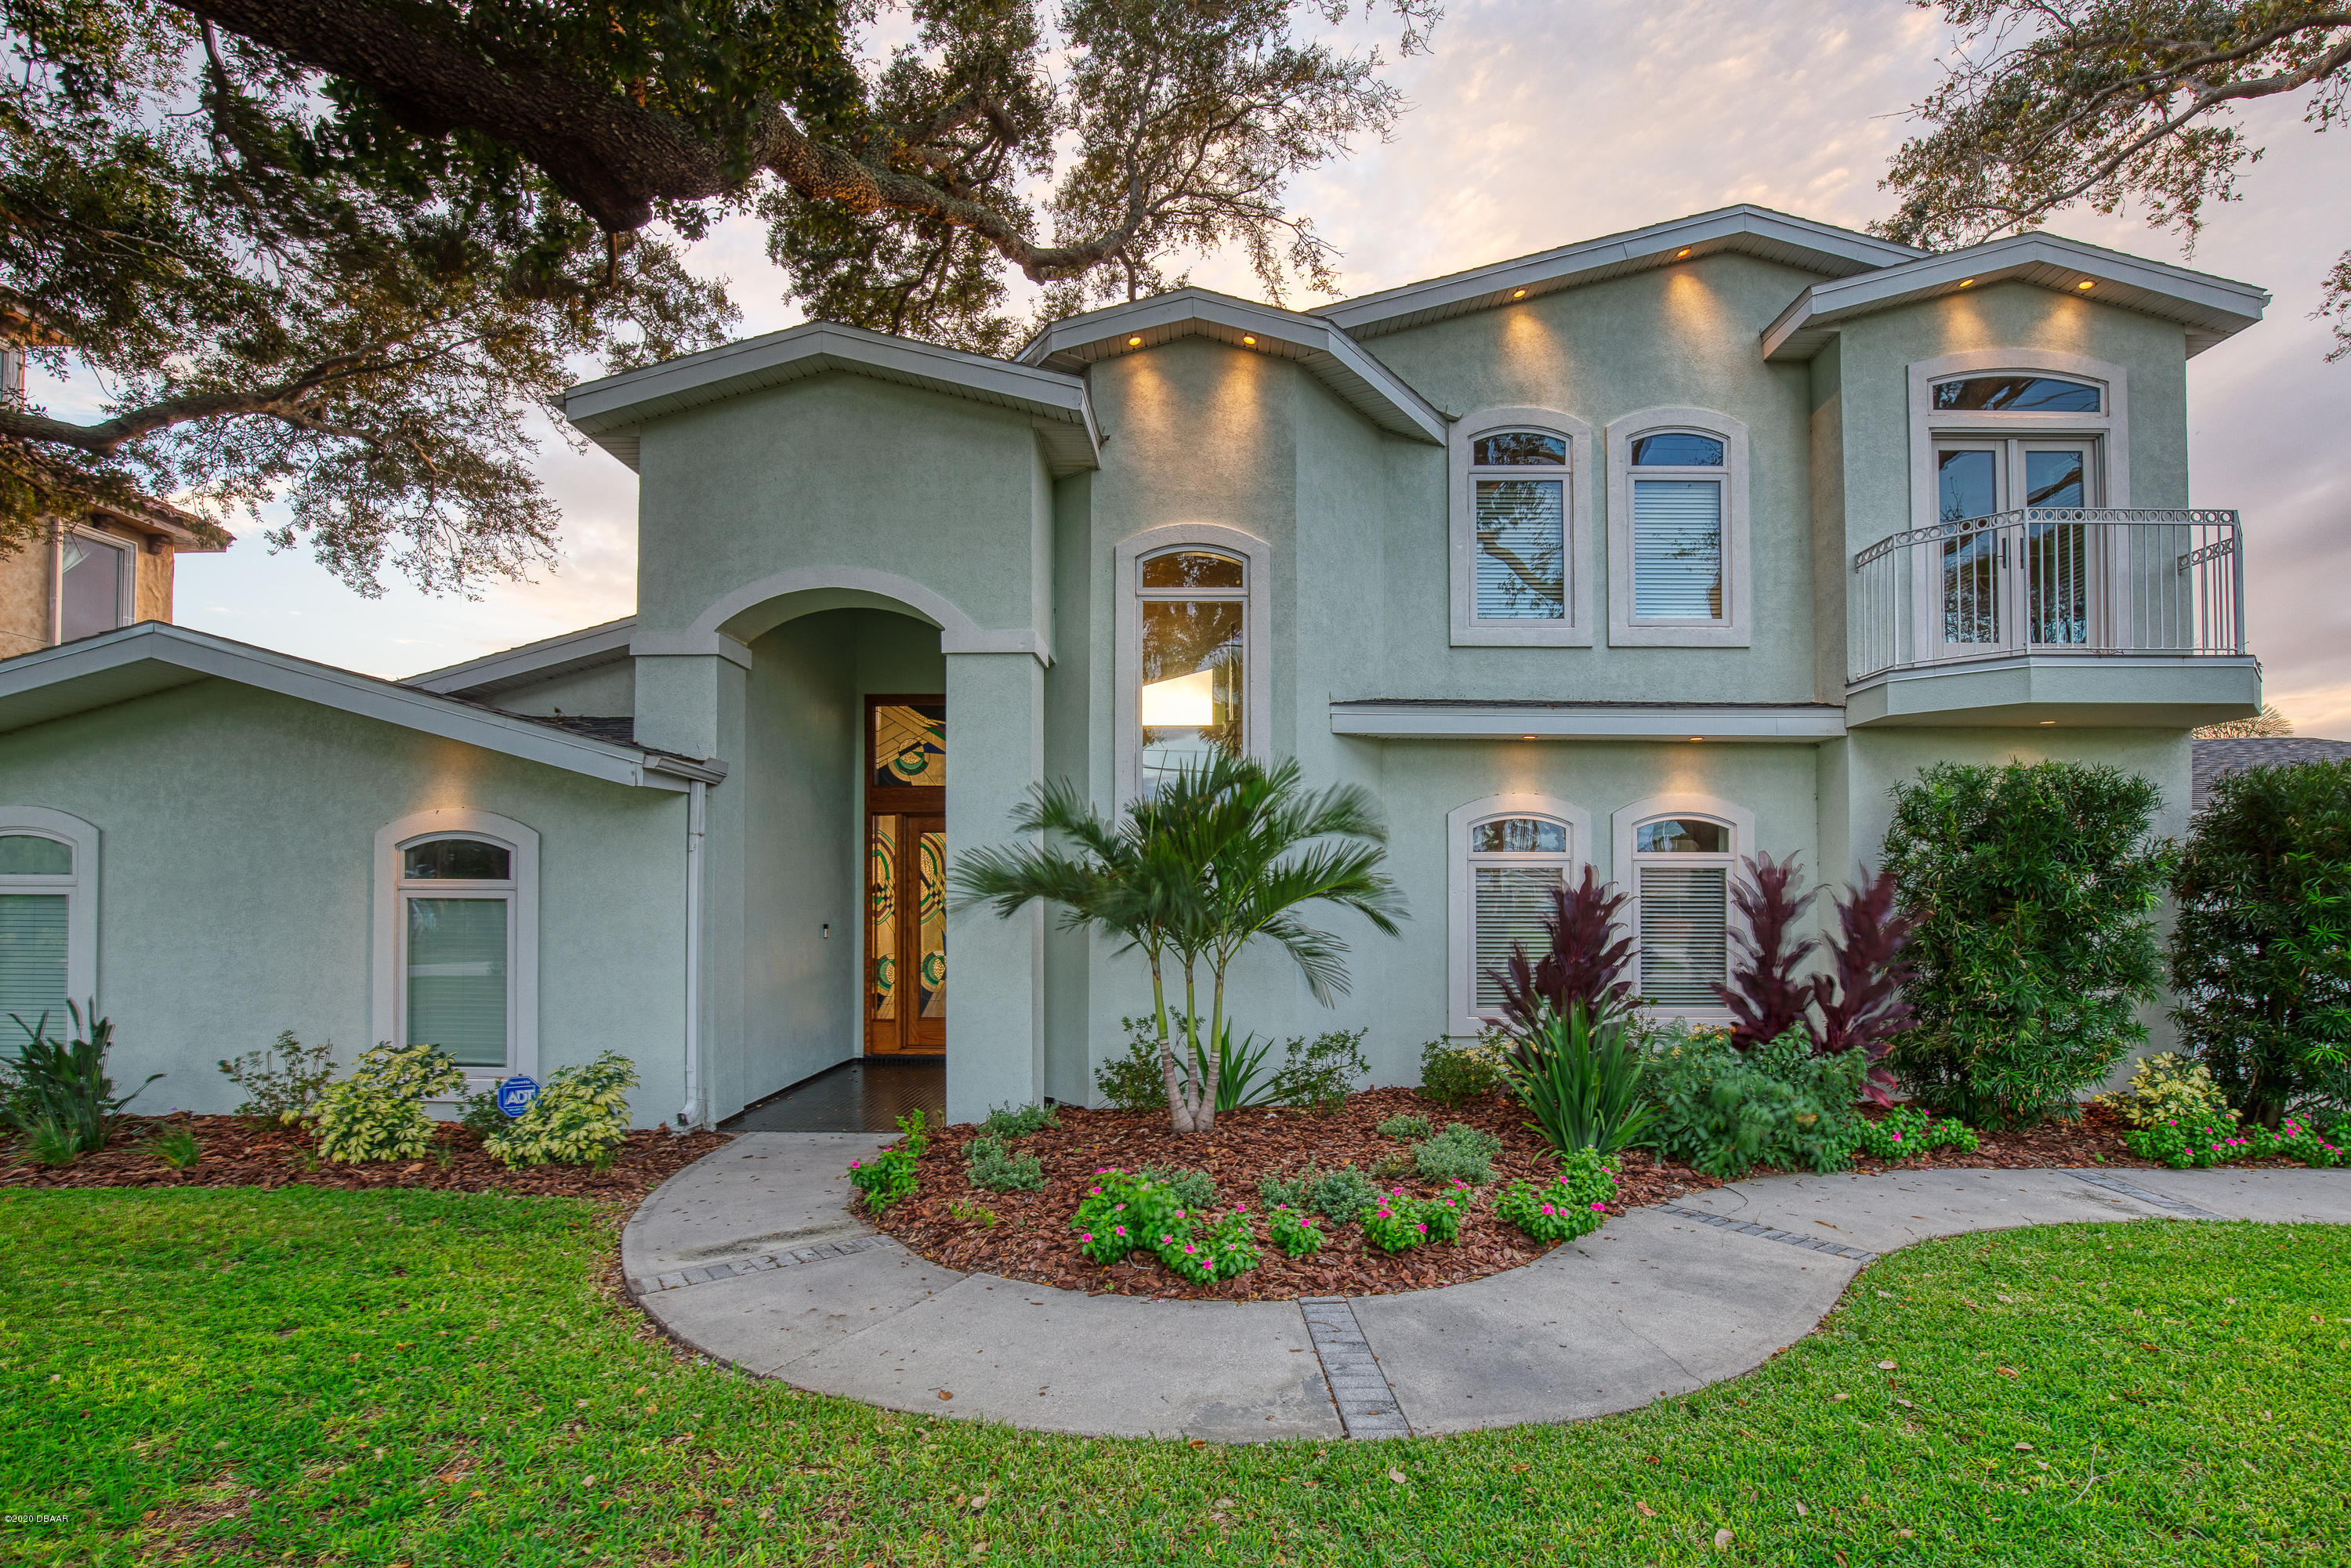 Photo of 2704 John Anderson Drive, Ormond Beach, FL 32176